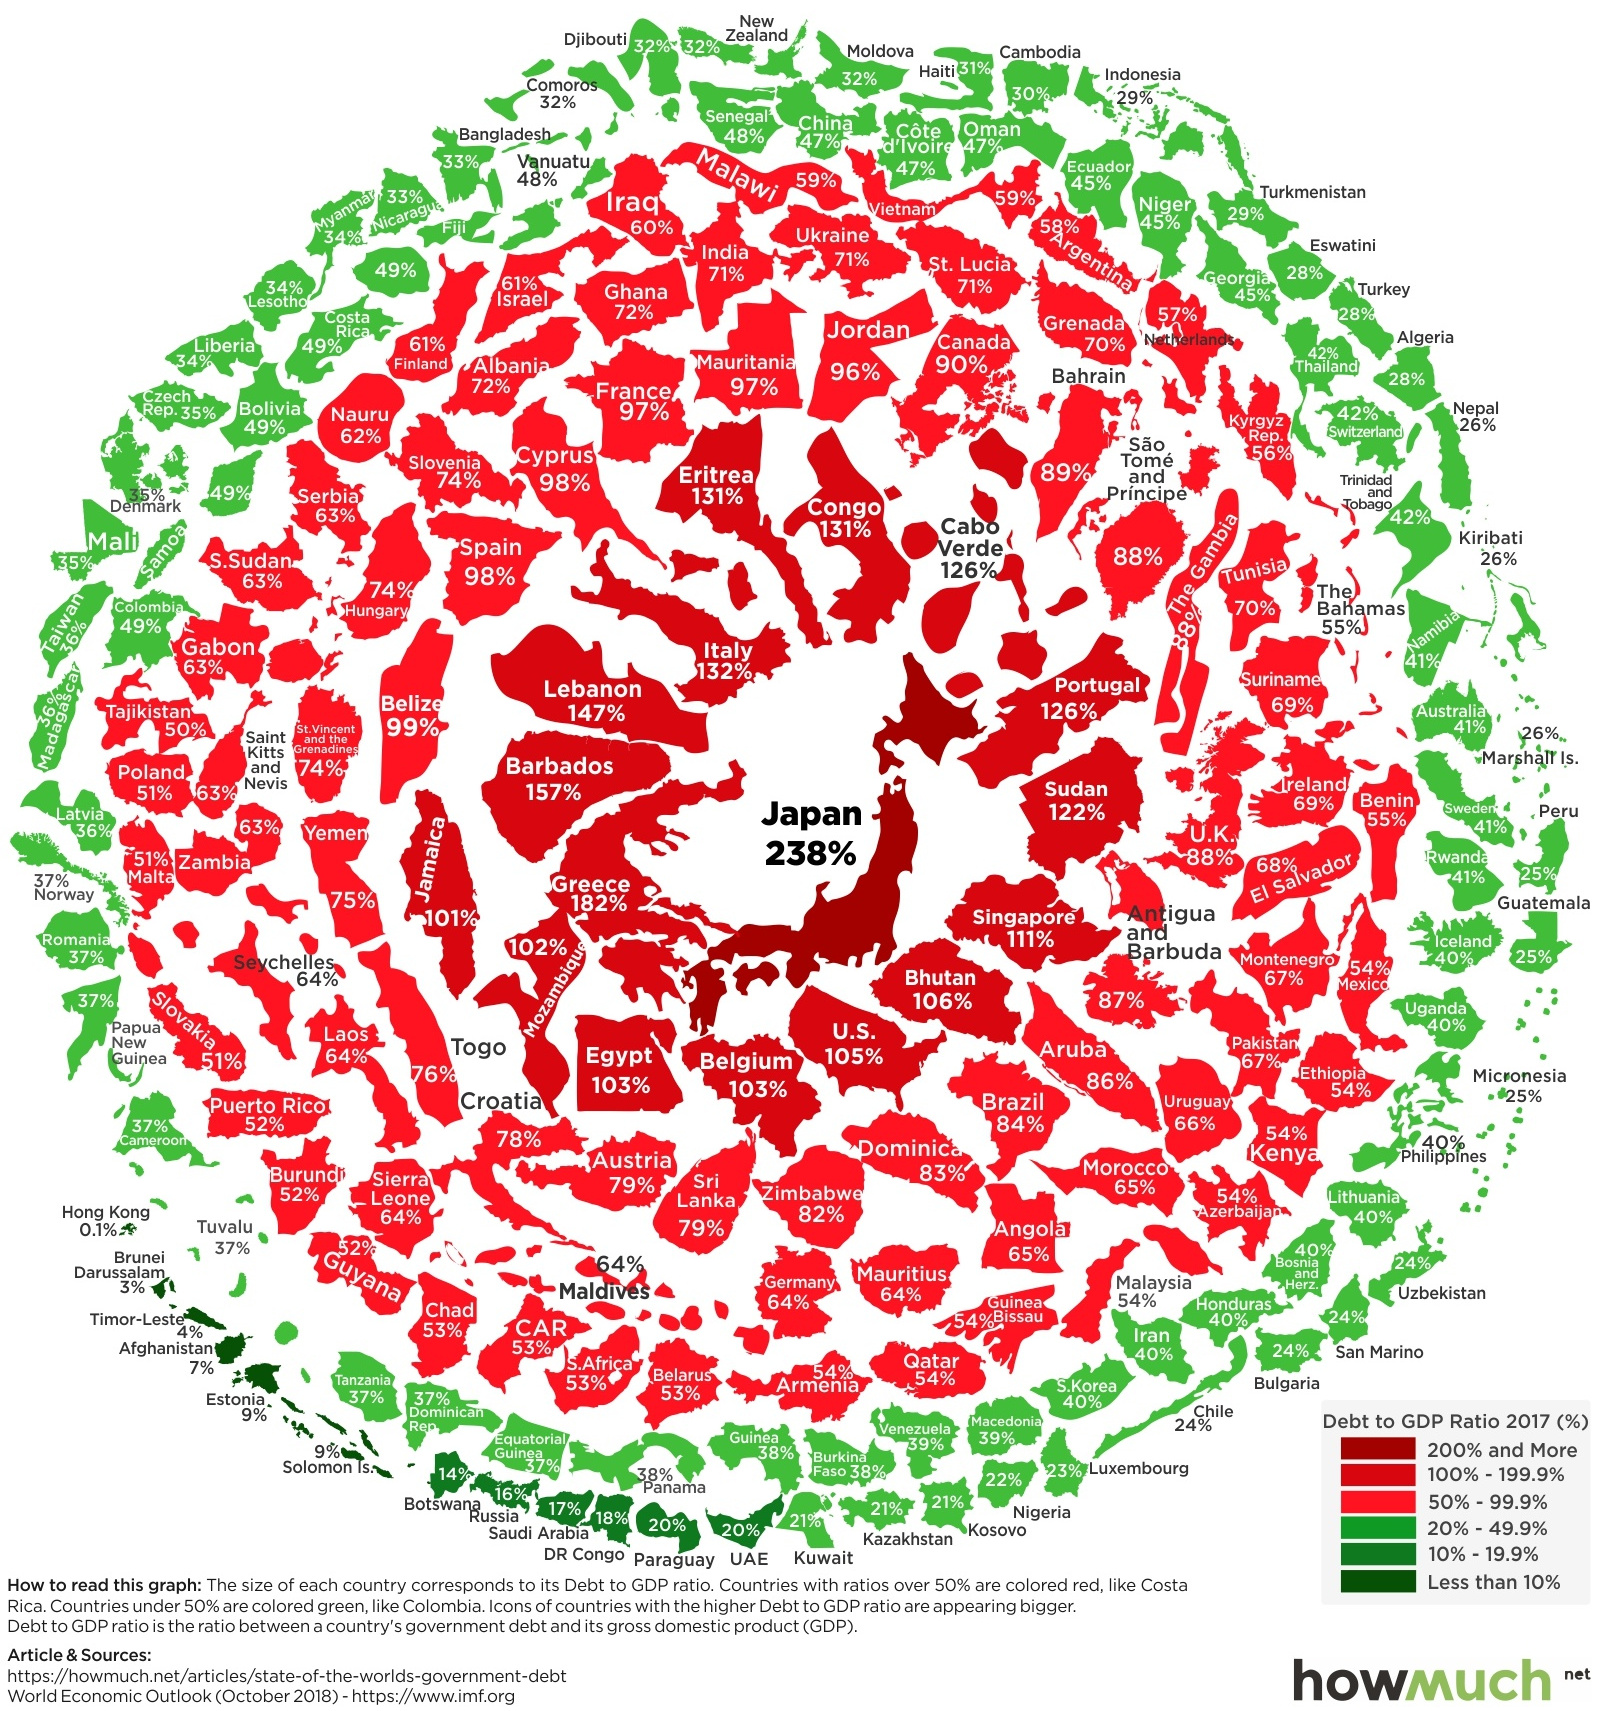 Visualizing the Snowball of Government Debt